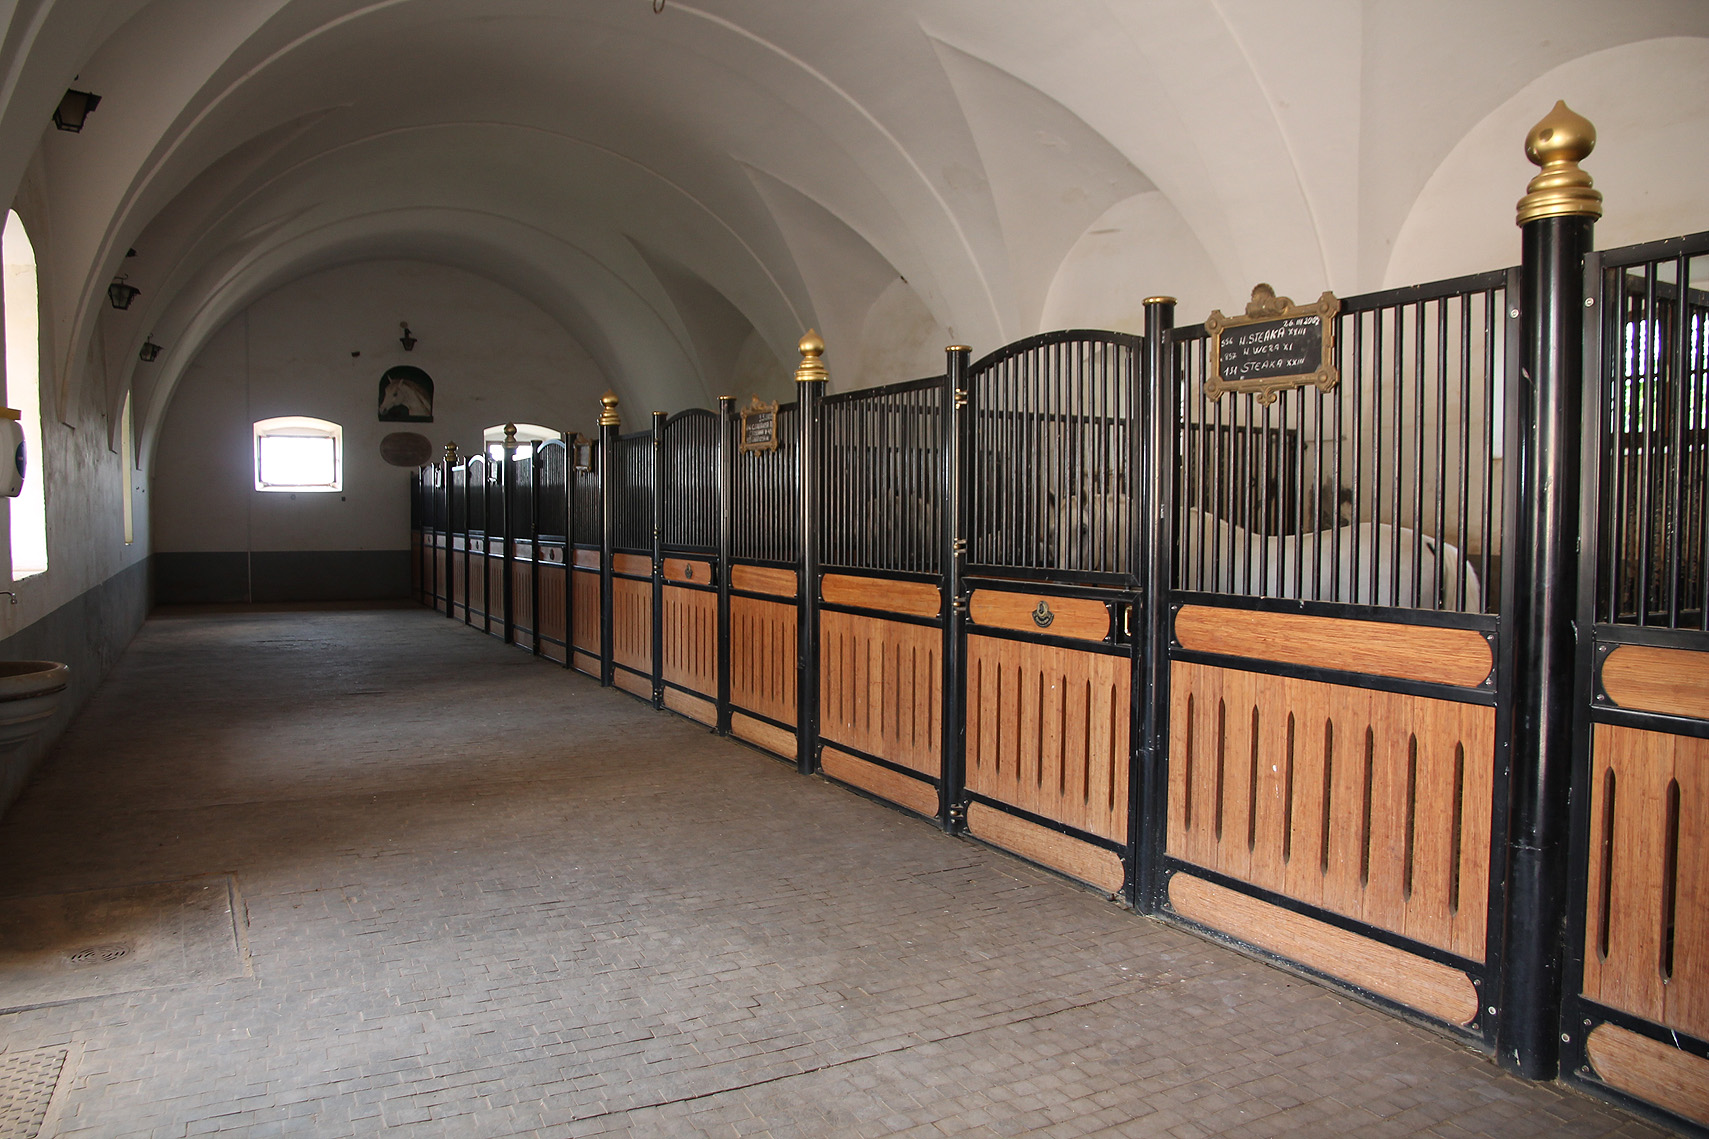 The Velbanca stable, from 1703.